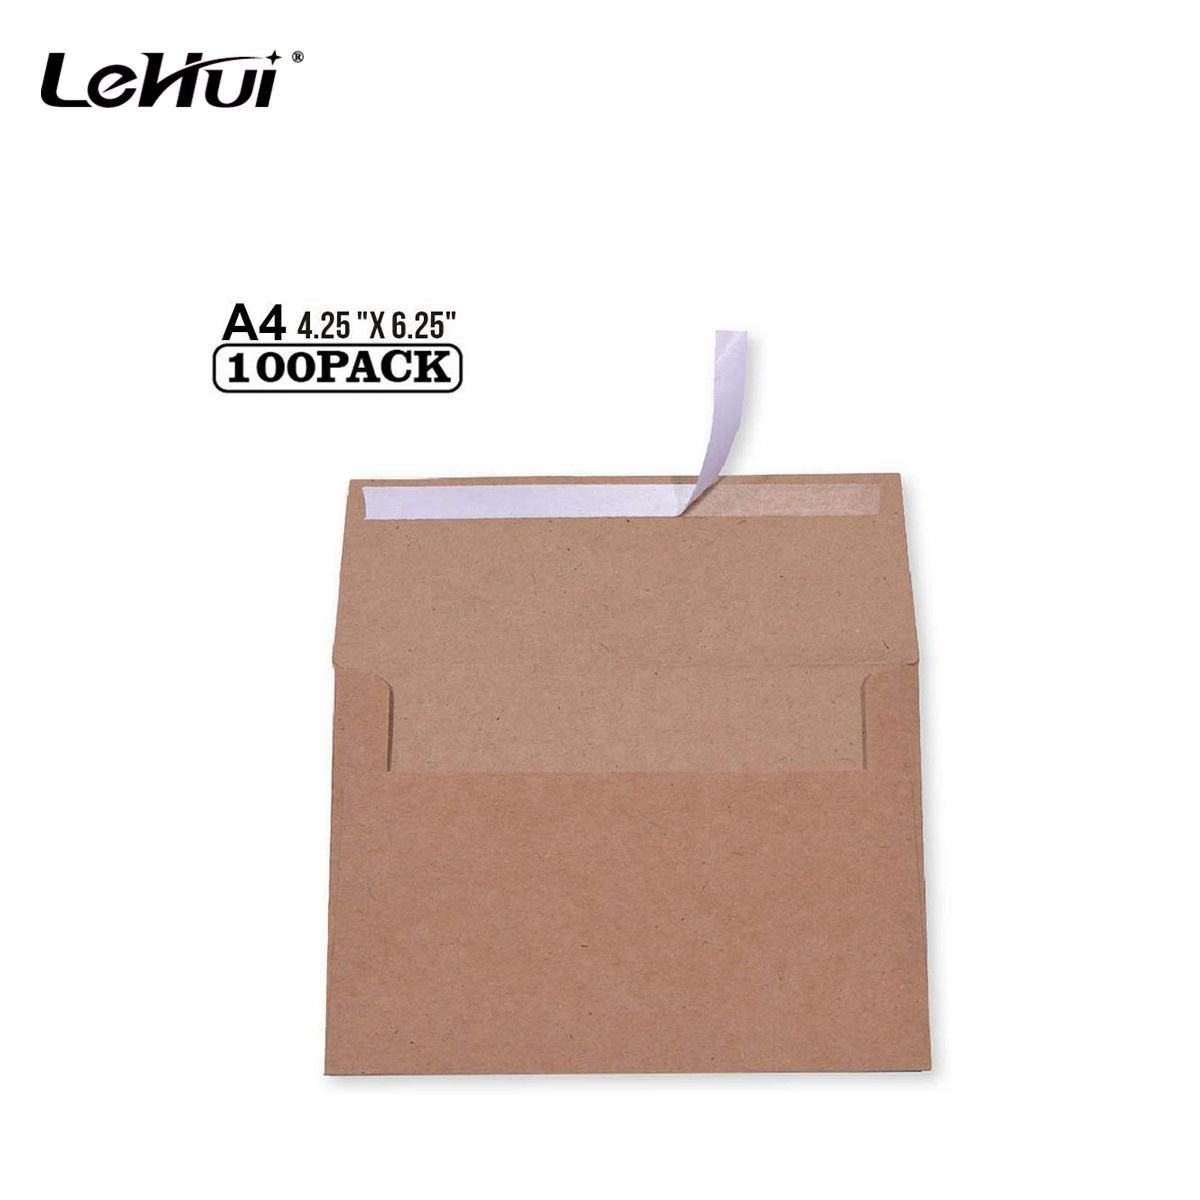 Cheap 100 Pack Size A4 4.25 x 6.25 inches Brown Kraft Paper 4 x 6 Envelopes Perfect For Stationery and General Office